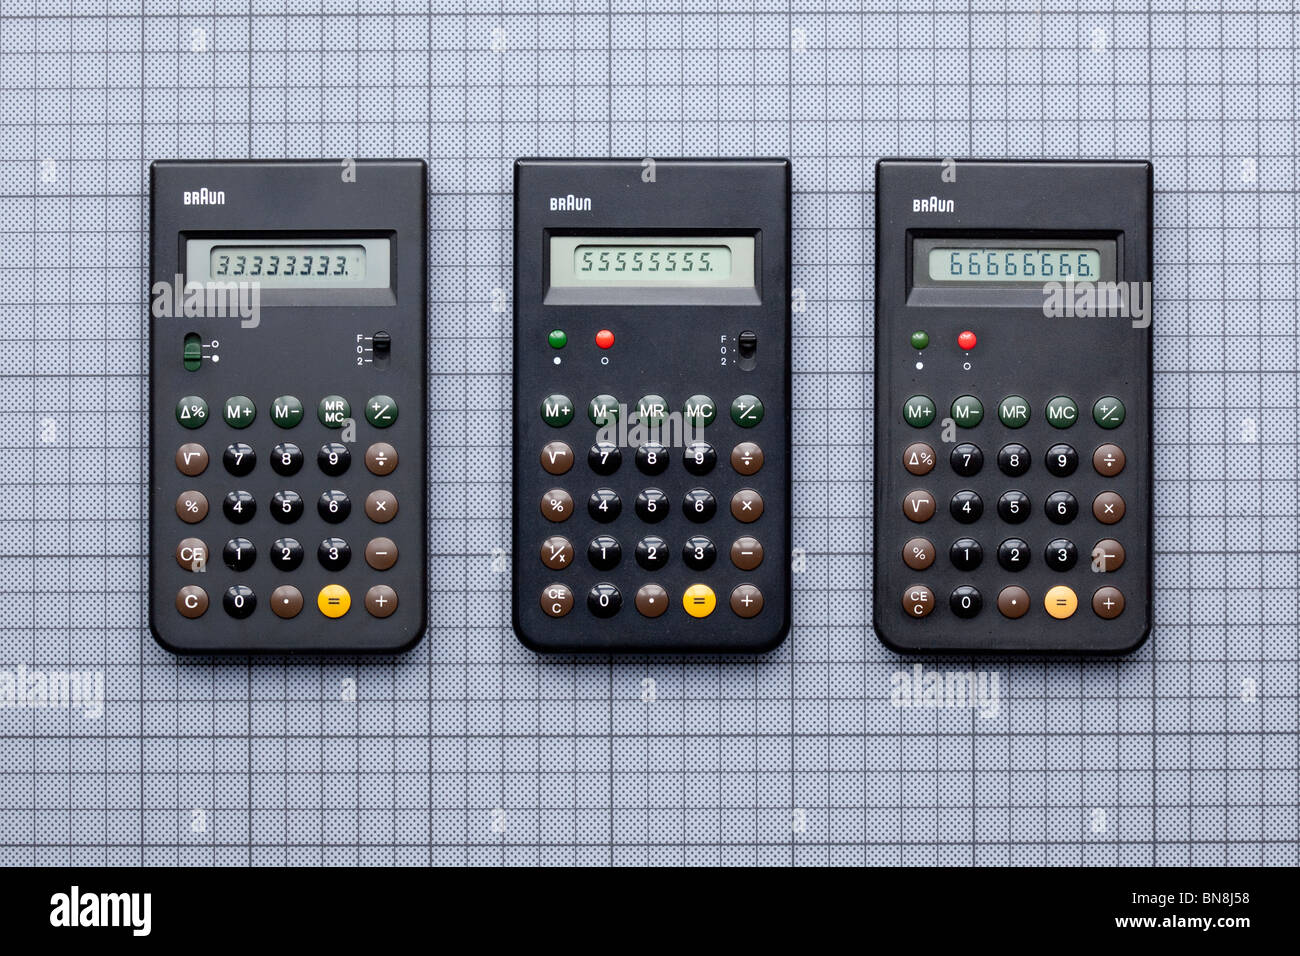 Three Braun calculators, ET33, ET55 and ET66, designed by Dieter Rams and Dietrich Lubs, 1977 - 1987 . and inspiration - Stock Image